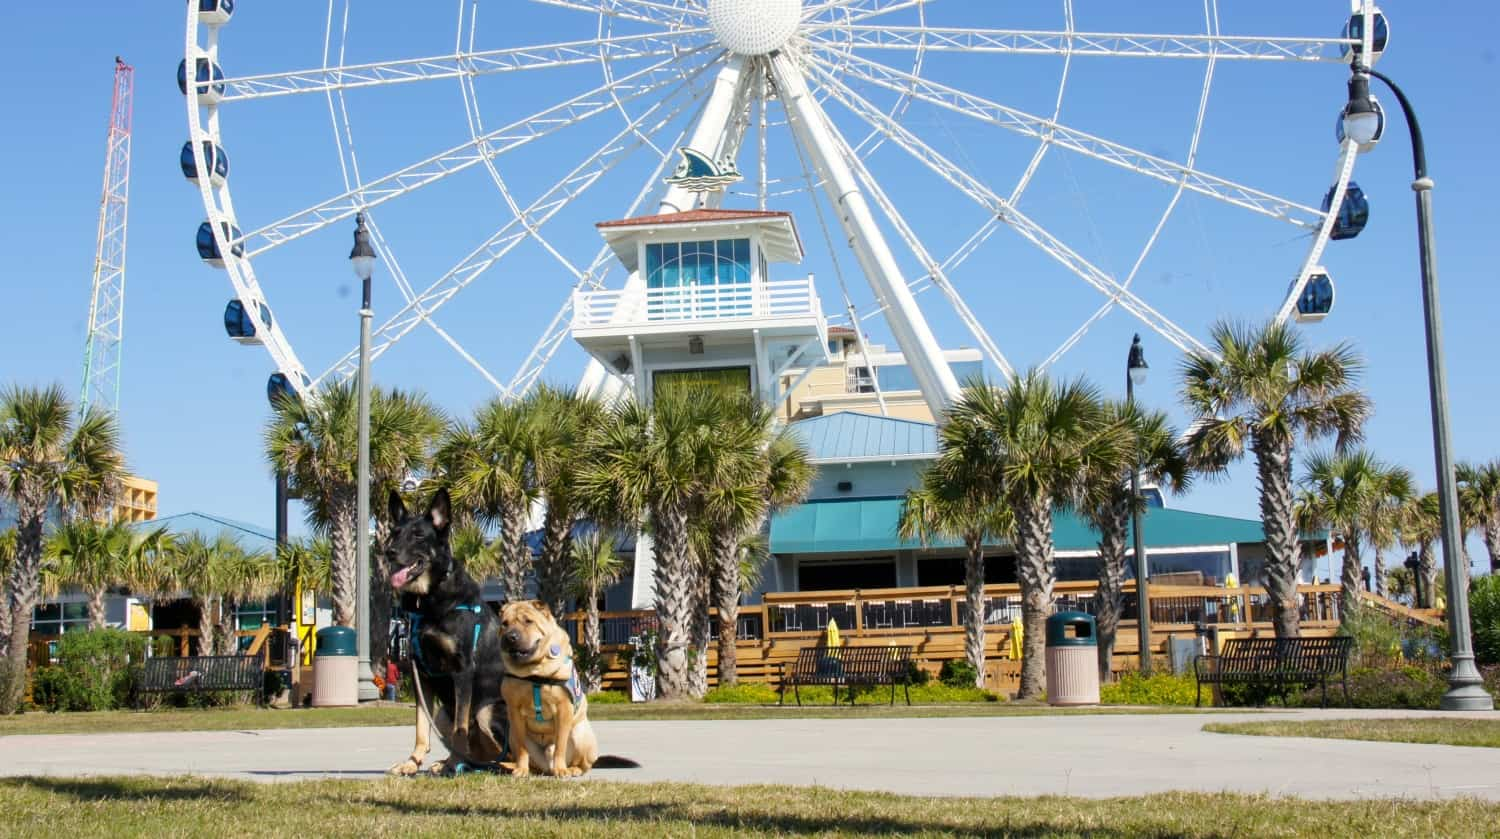 Dog Friendly Myrtle Beach in the Offseason